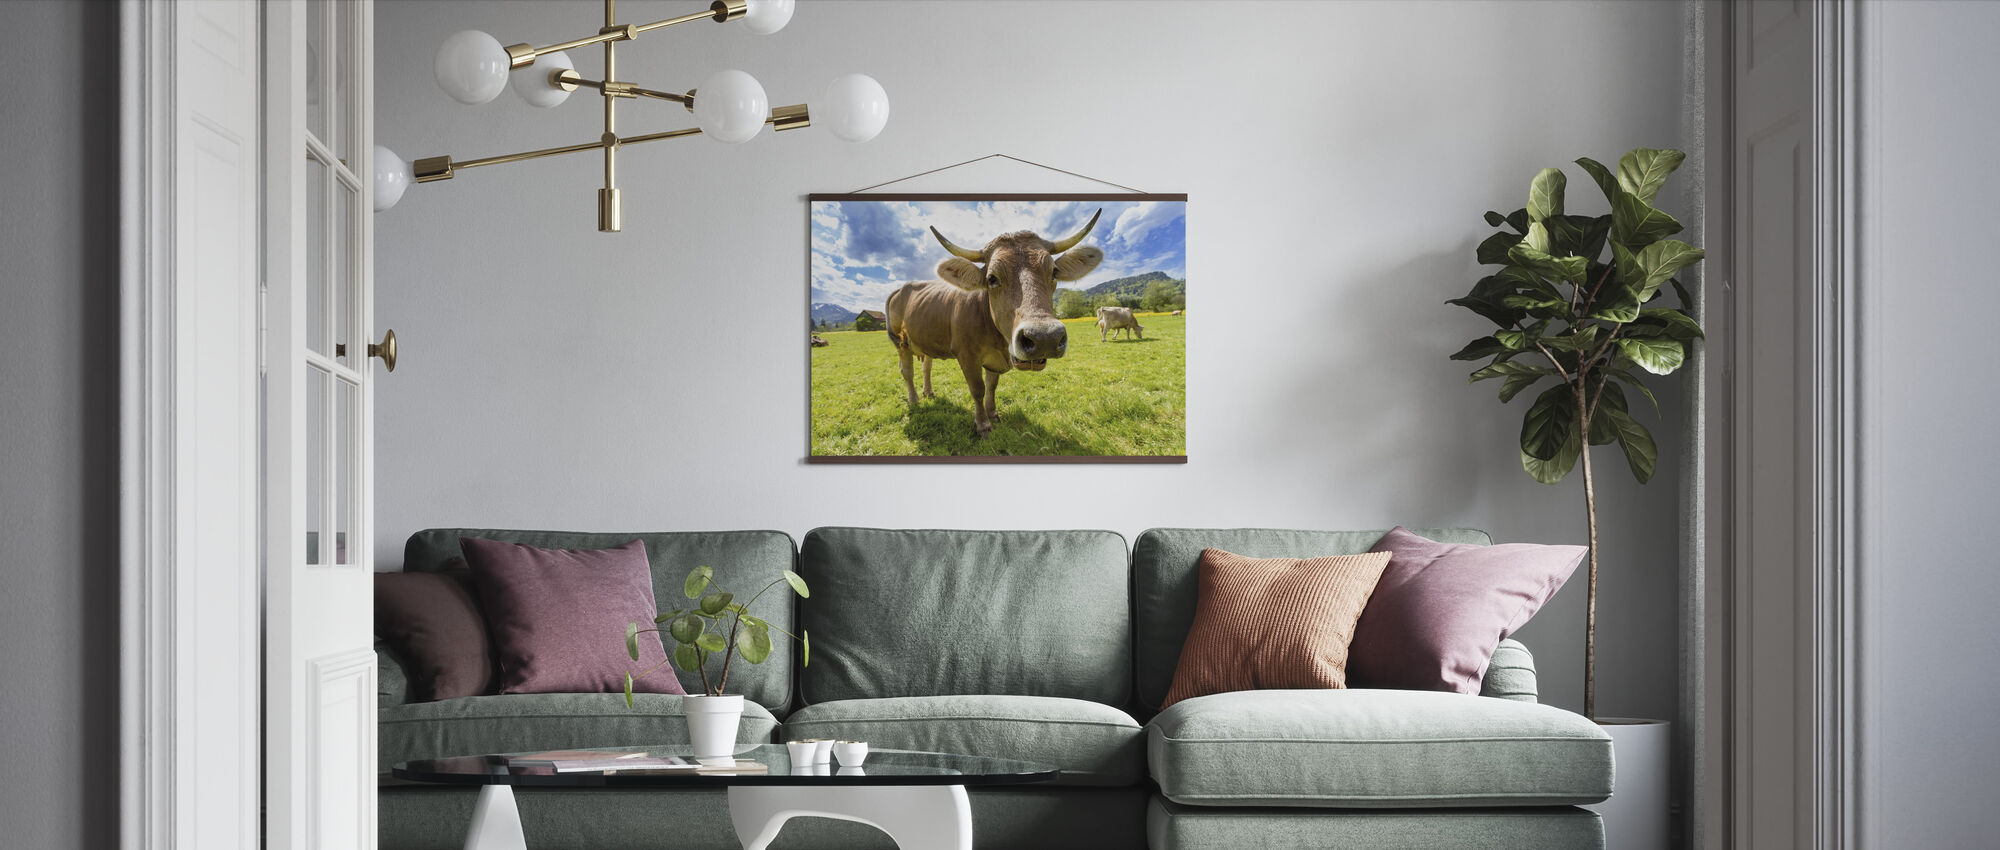 Cow Up Close - Poster - Living Room